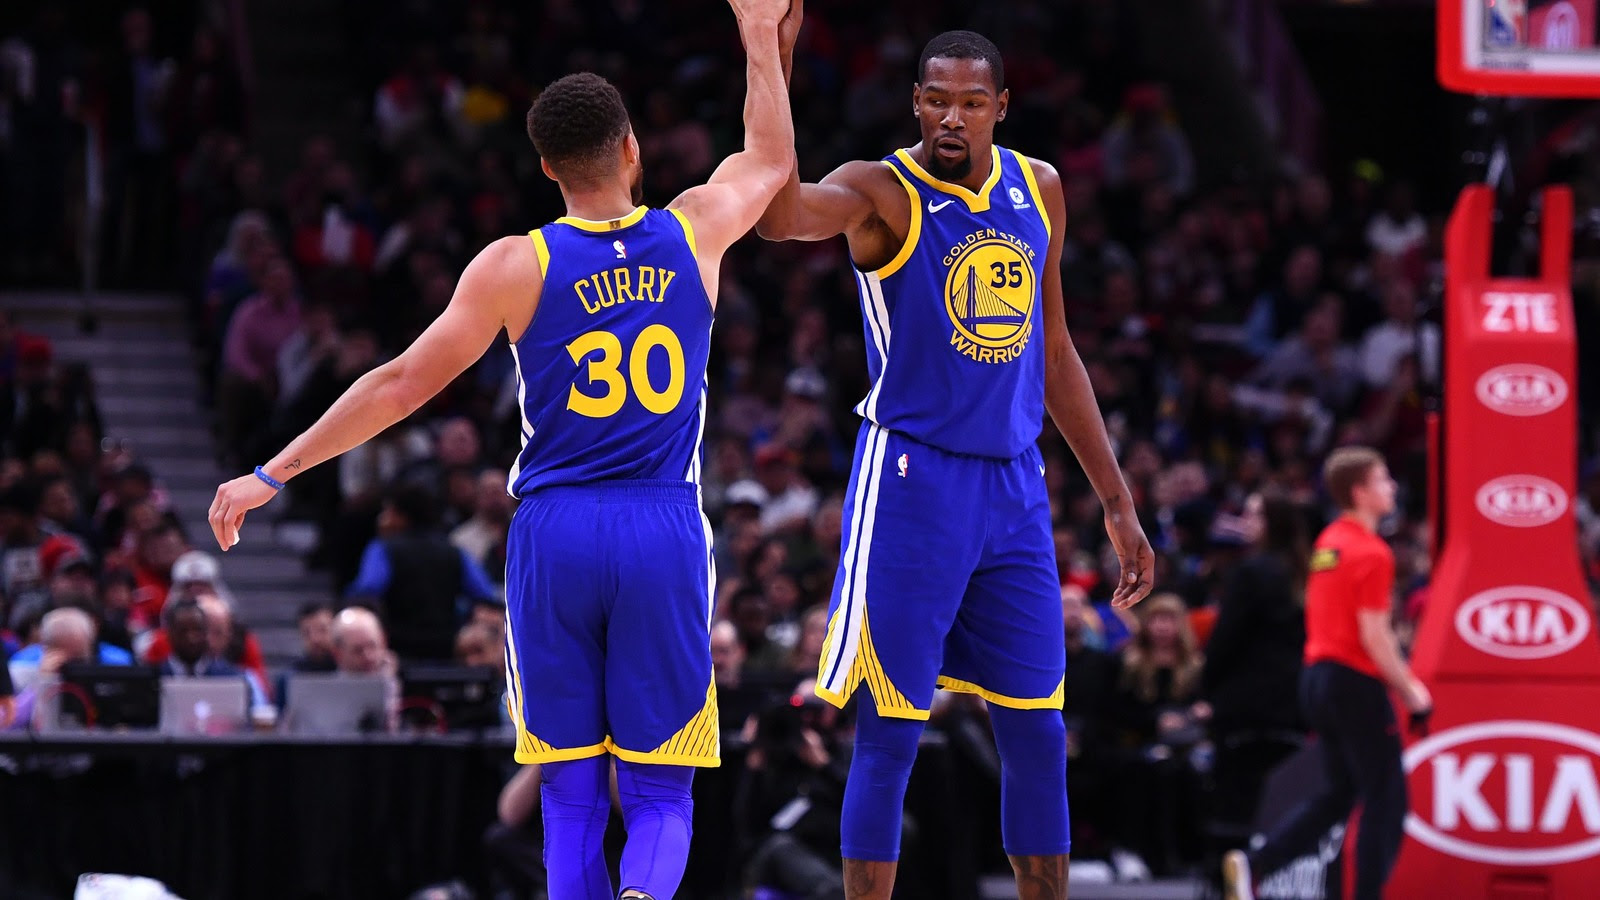 Kevin Durant Issues All Star Game Warning To Steph Curry Yardbarker